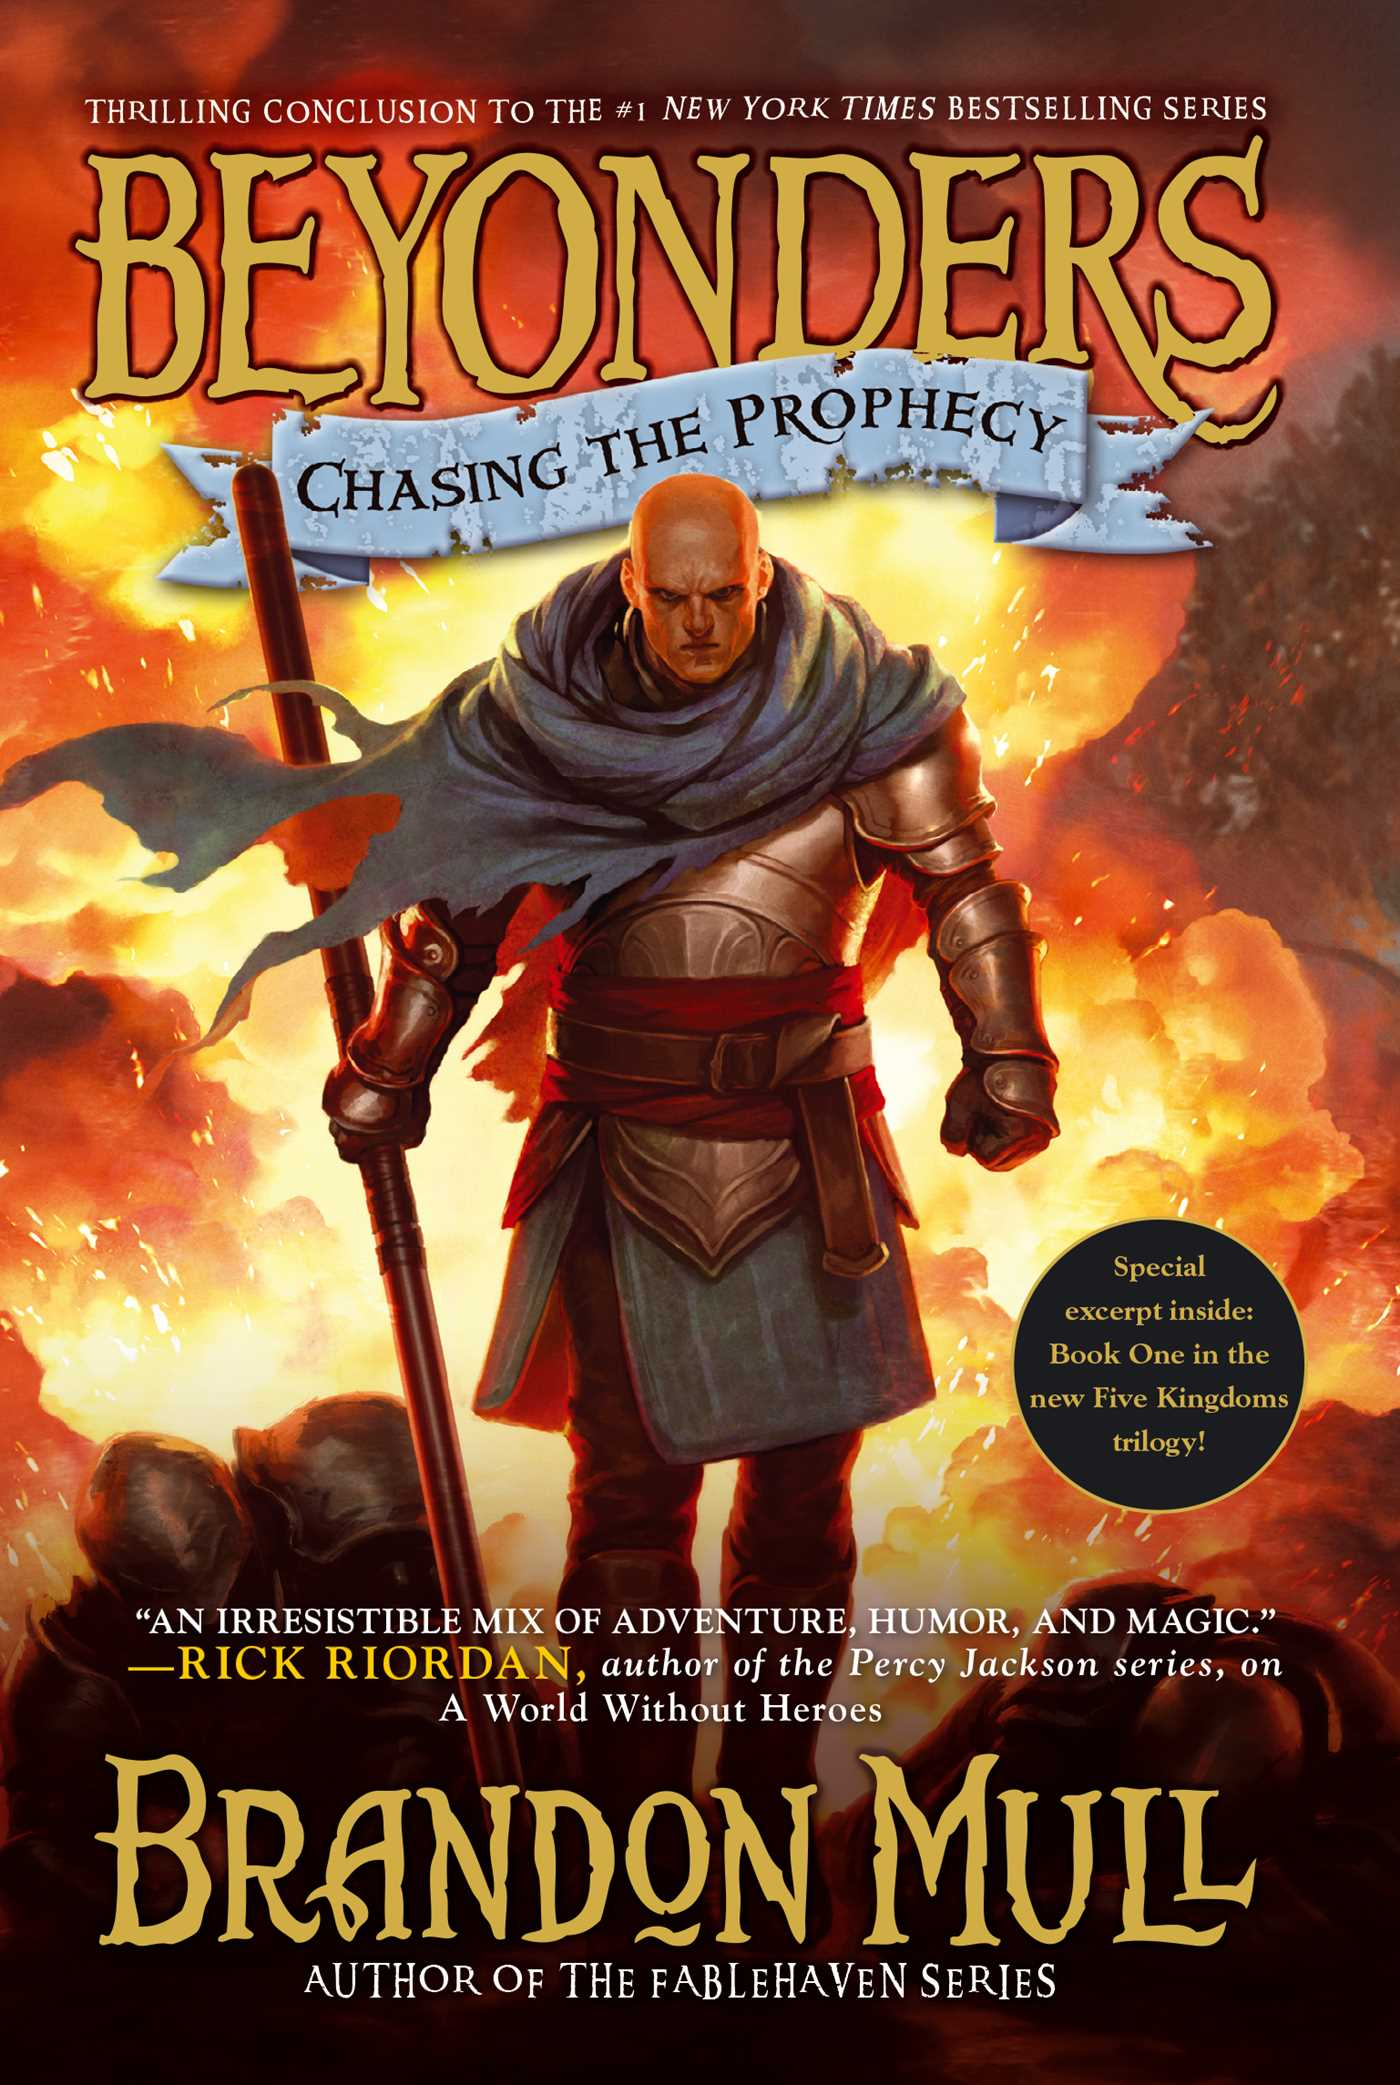 Chasing the prophecy 9781416998006 hr